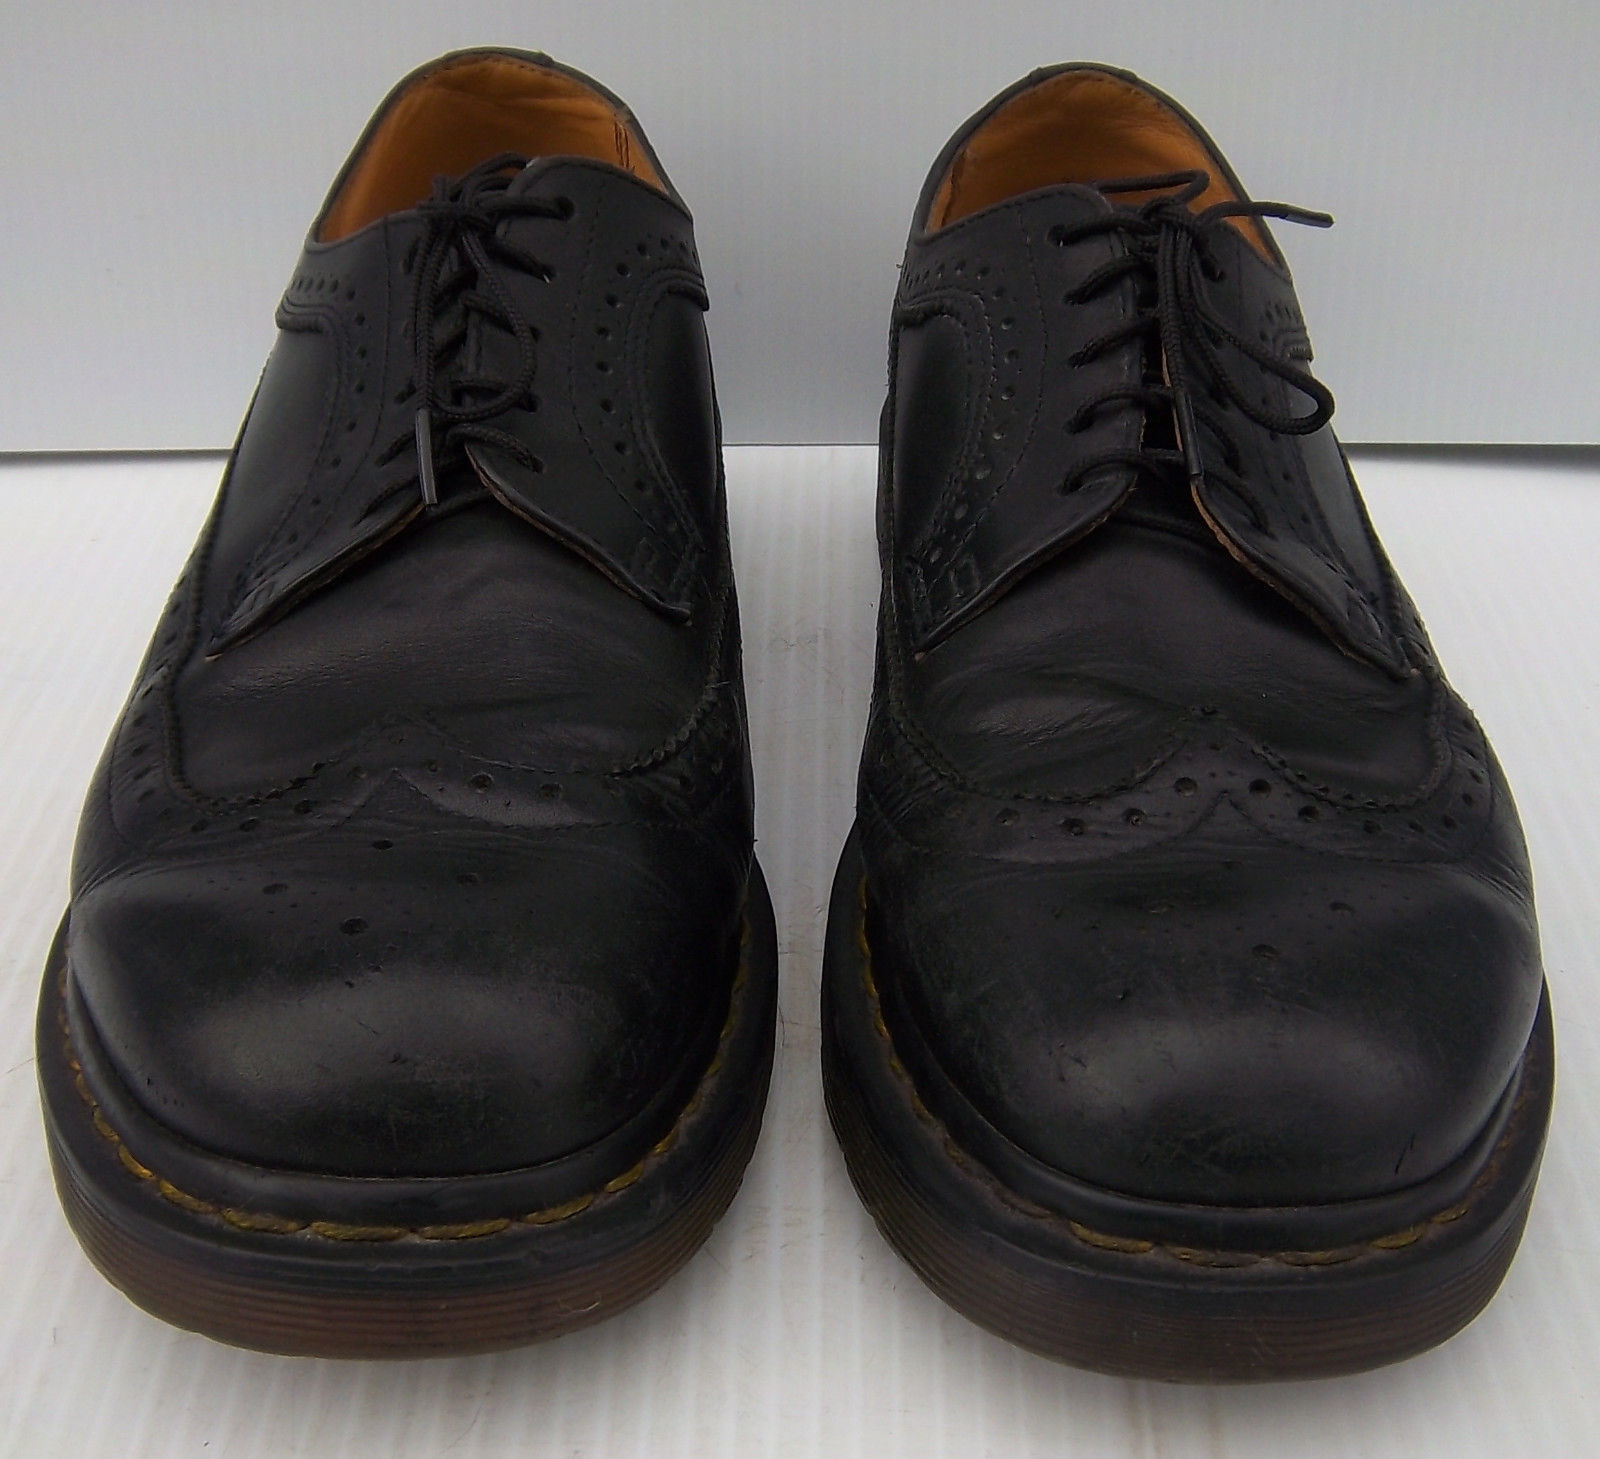 DR MARTENS  11845 Black Leather Wingtip Oxford Shoes  Size US  M9  W10